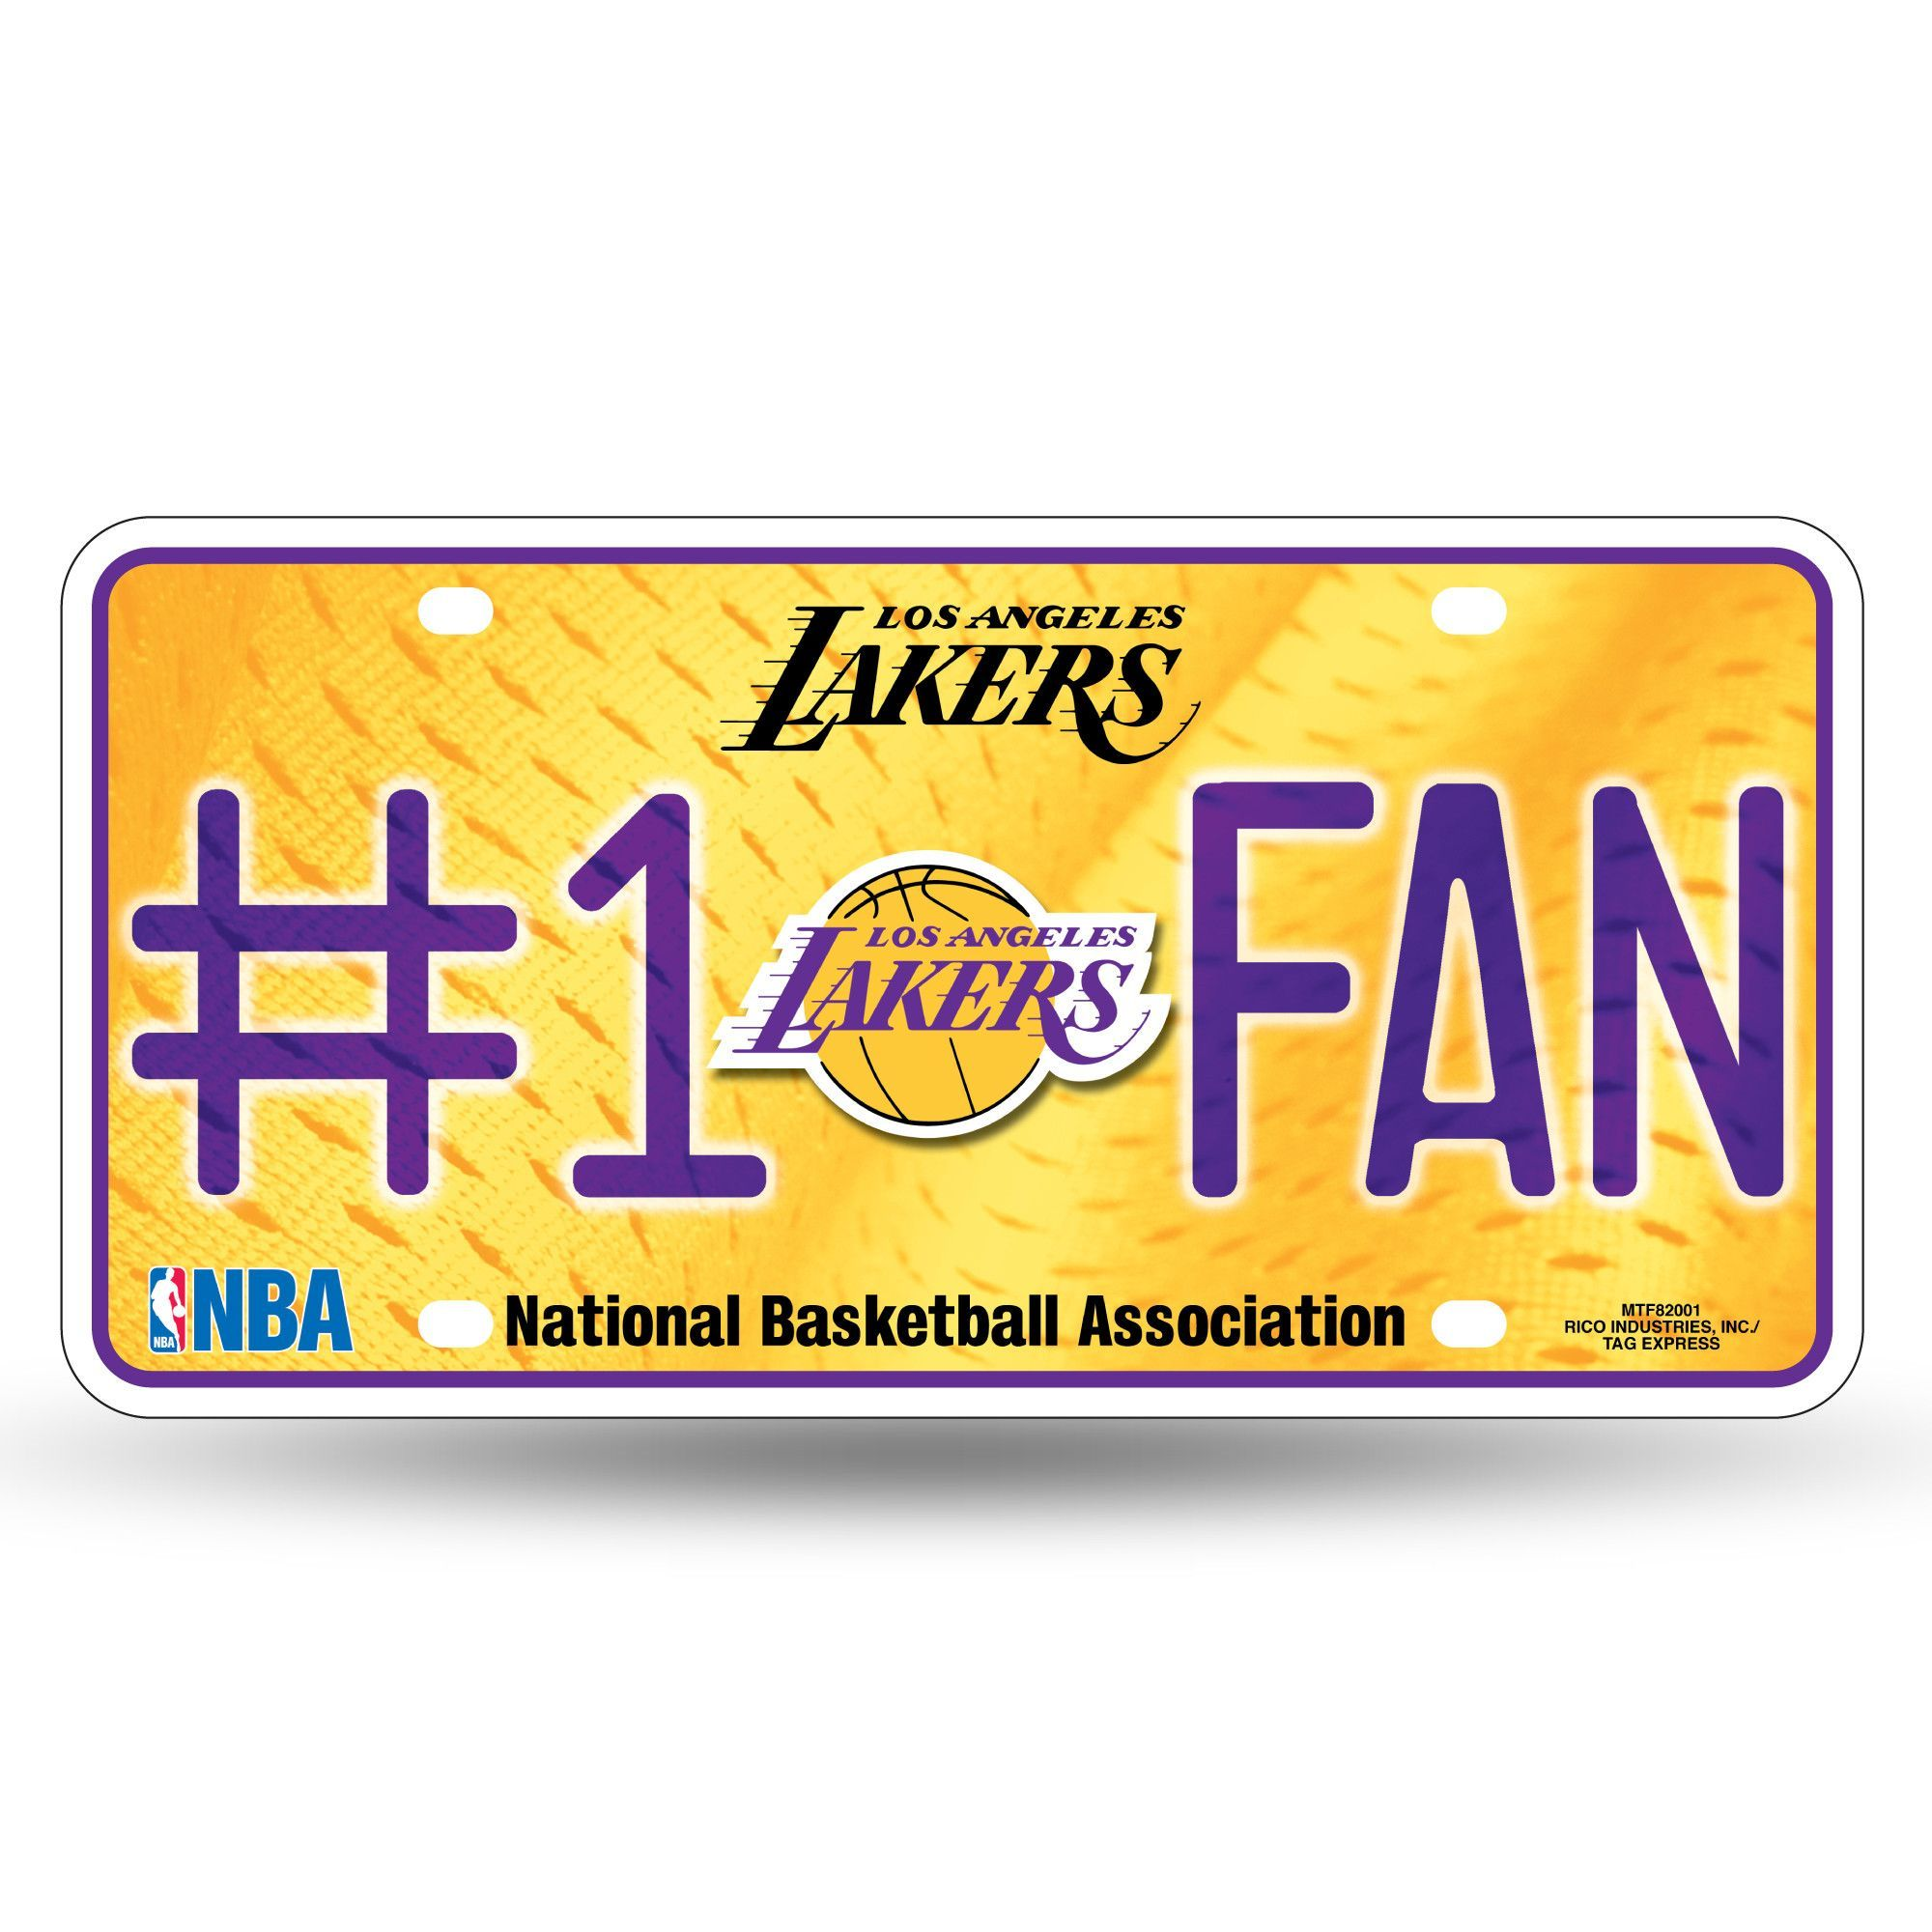 Lakers NBA Metal License Plate 1 FAN (With images) Los